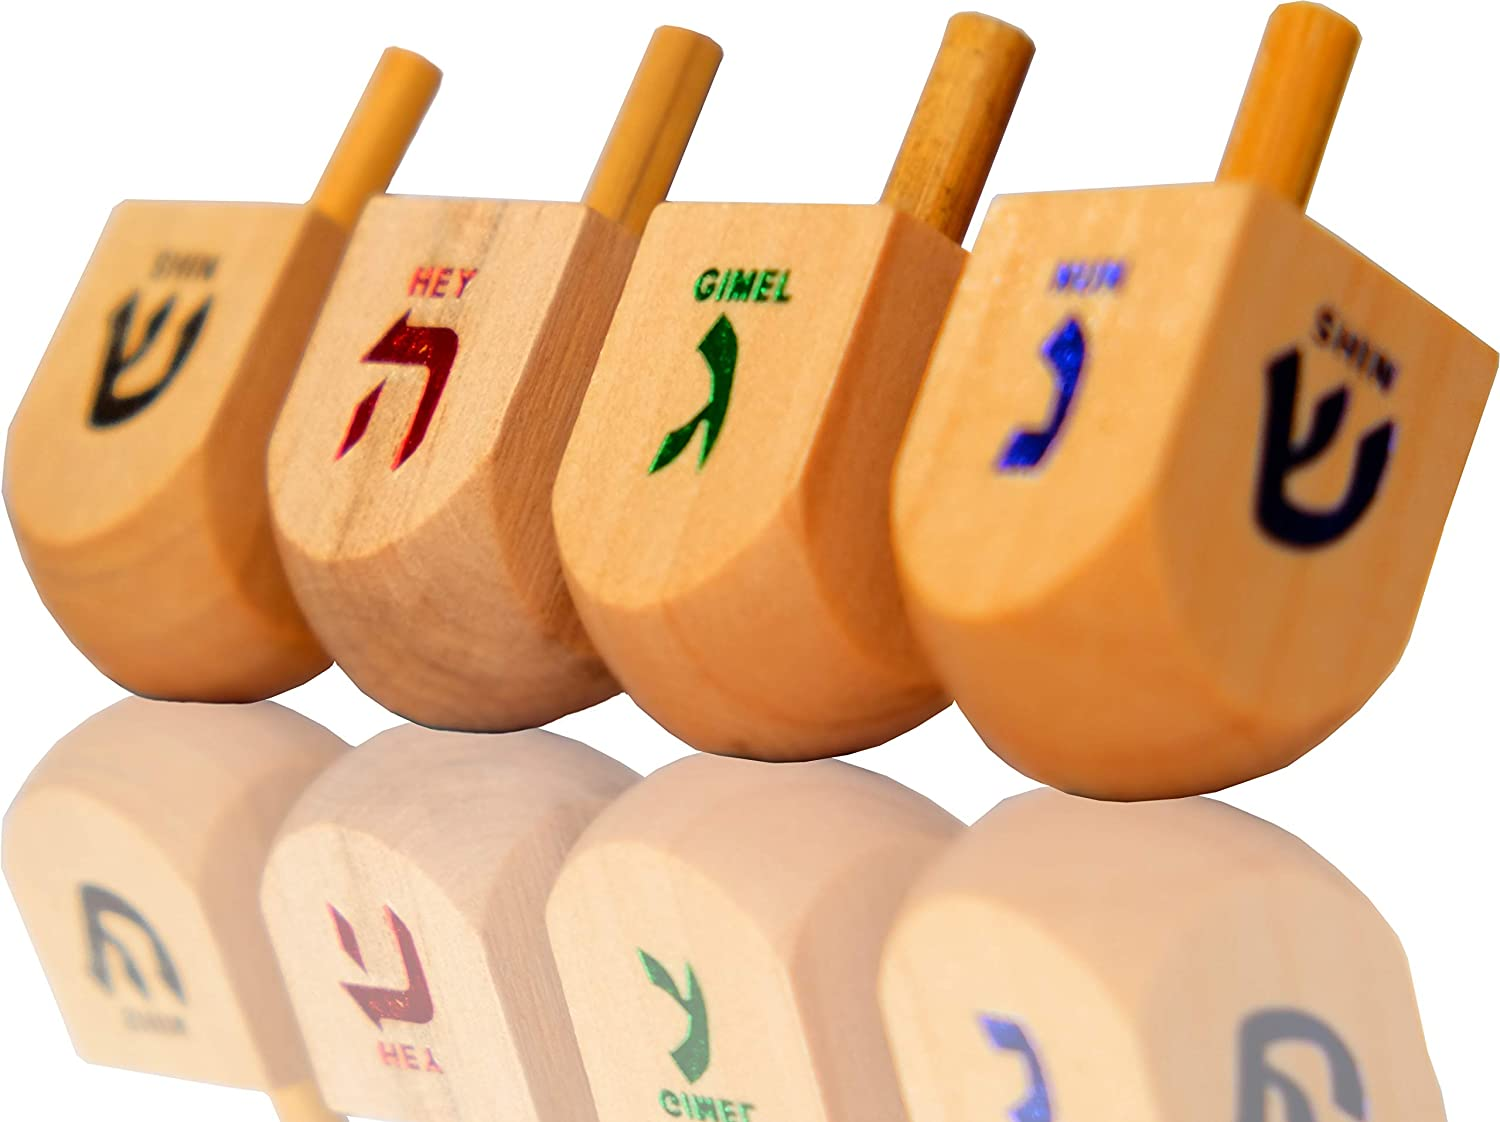 Let's Play Dreidel The Hanukkah Game 4 Natural Wooden Draydels with Instructions for Chanukah - Instructions Included